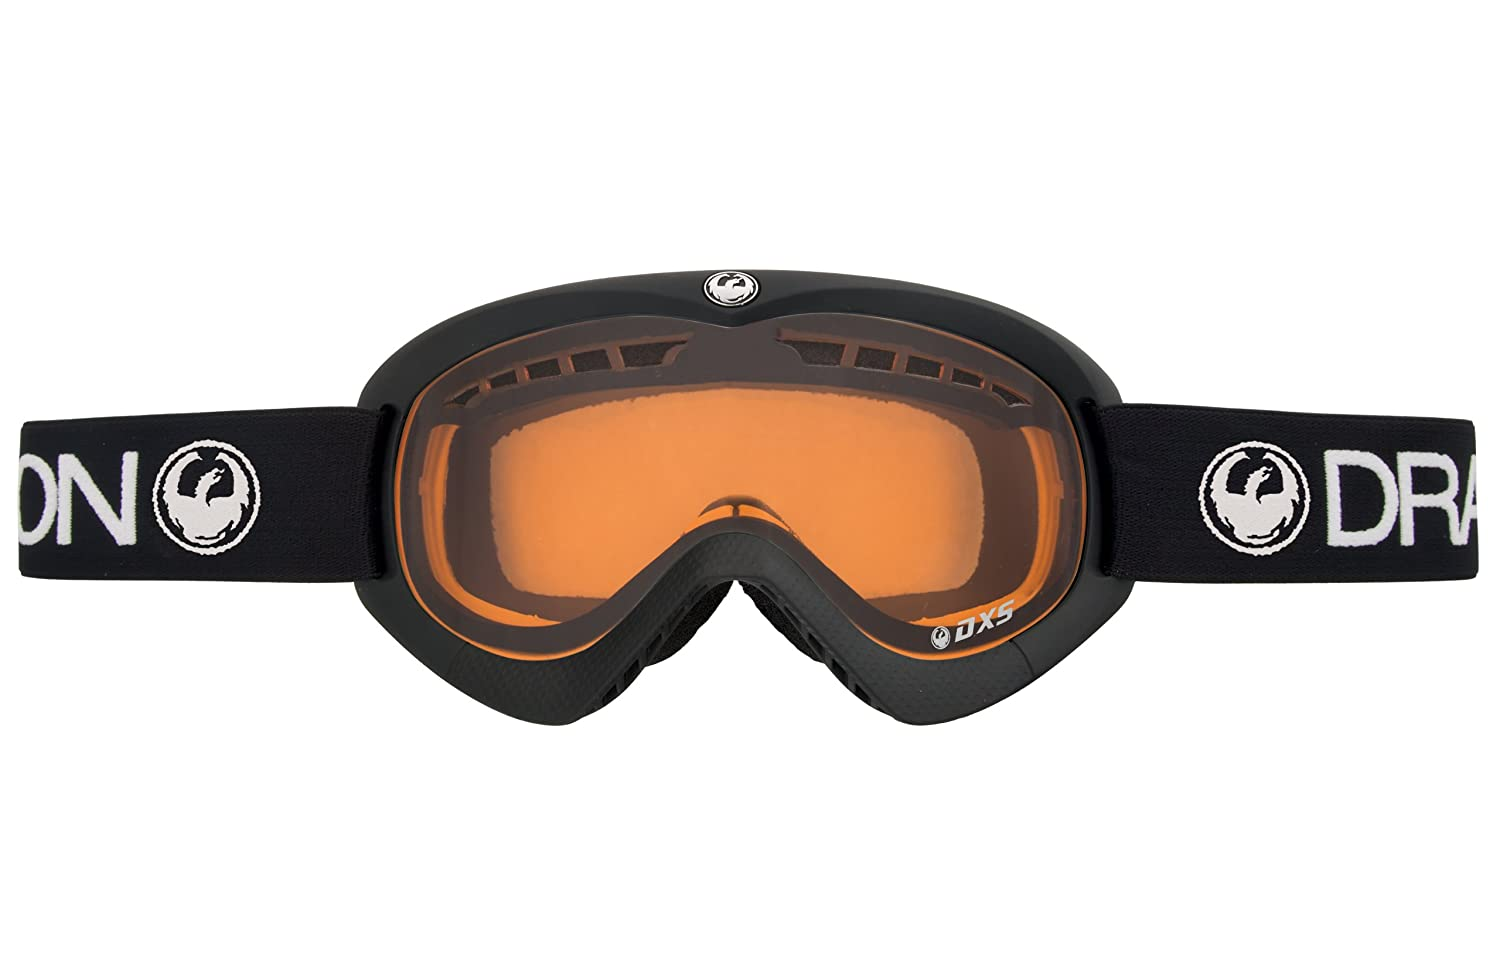 Smoke special $offer NEW Dragon Alliance DX Ski snowboard Goggles women/'s Pink